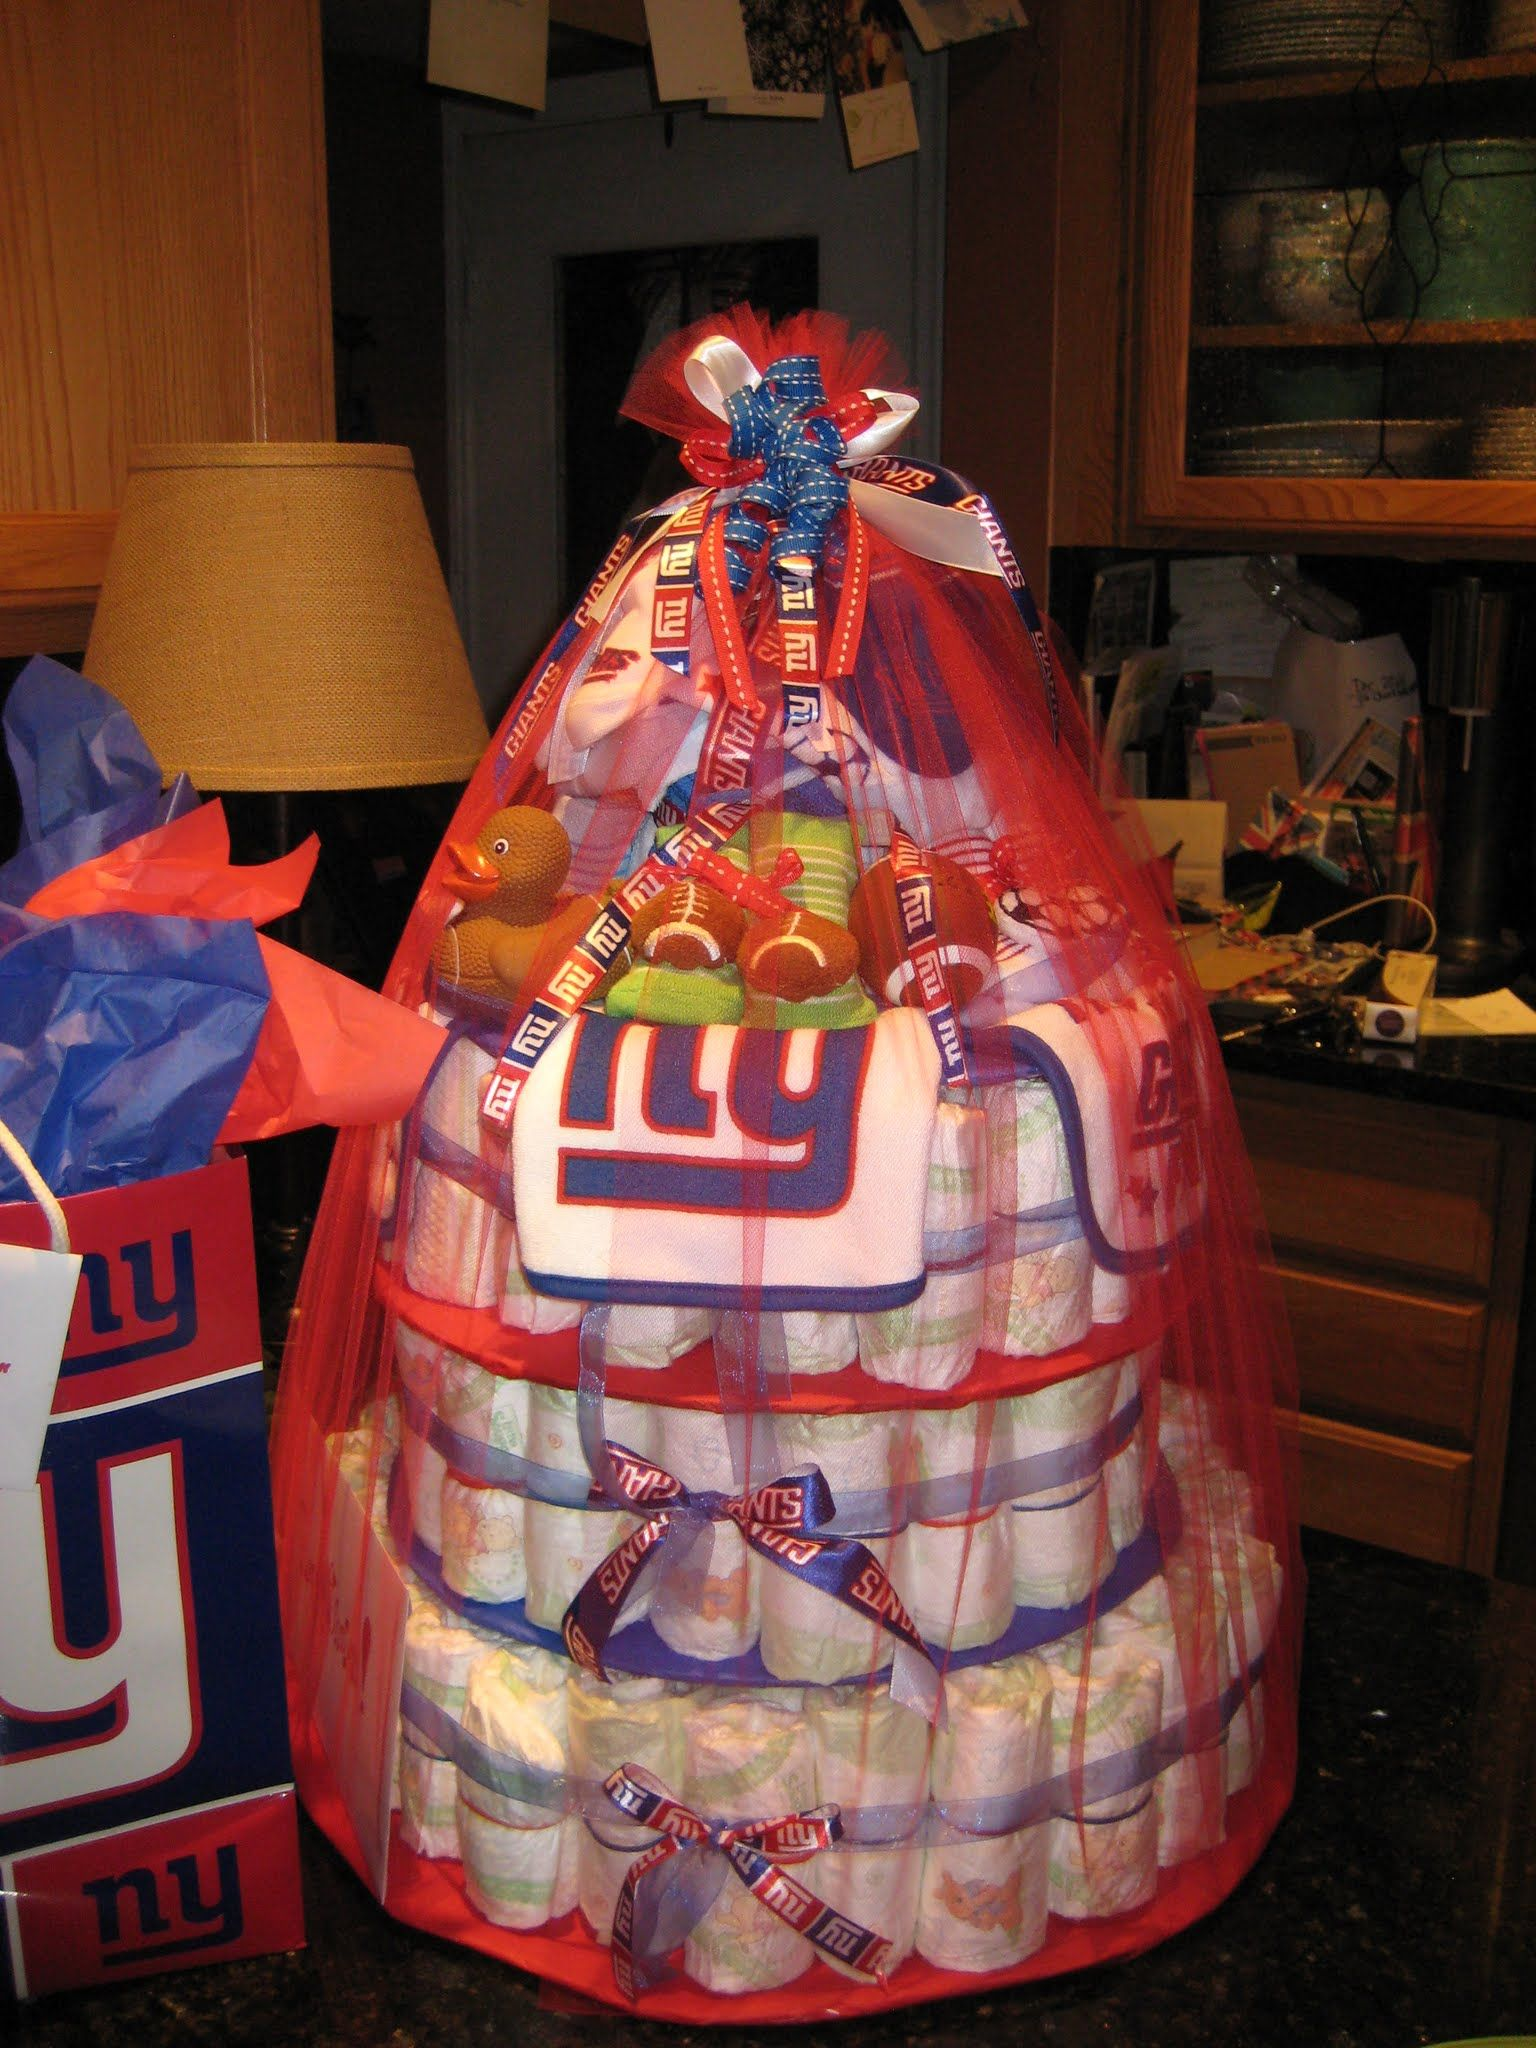 NFL Giants themed baby diaper cake for baby shower gift. Made of three tiers of Huggies sizes  1 and 2  totaling 120 diapers rolled w/ red and blue rubber bands.